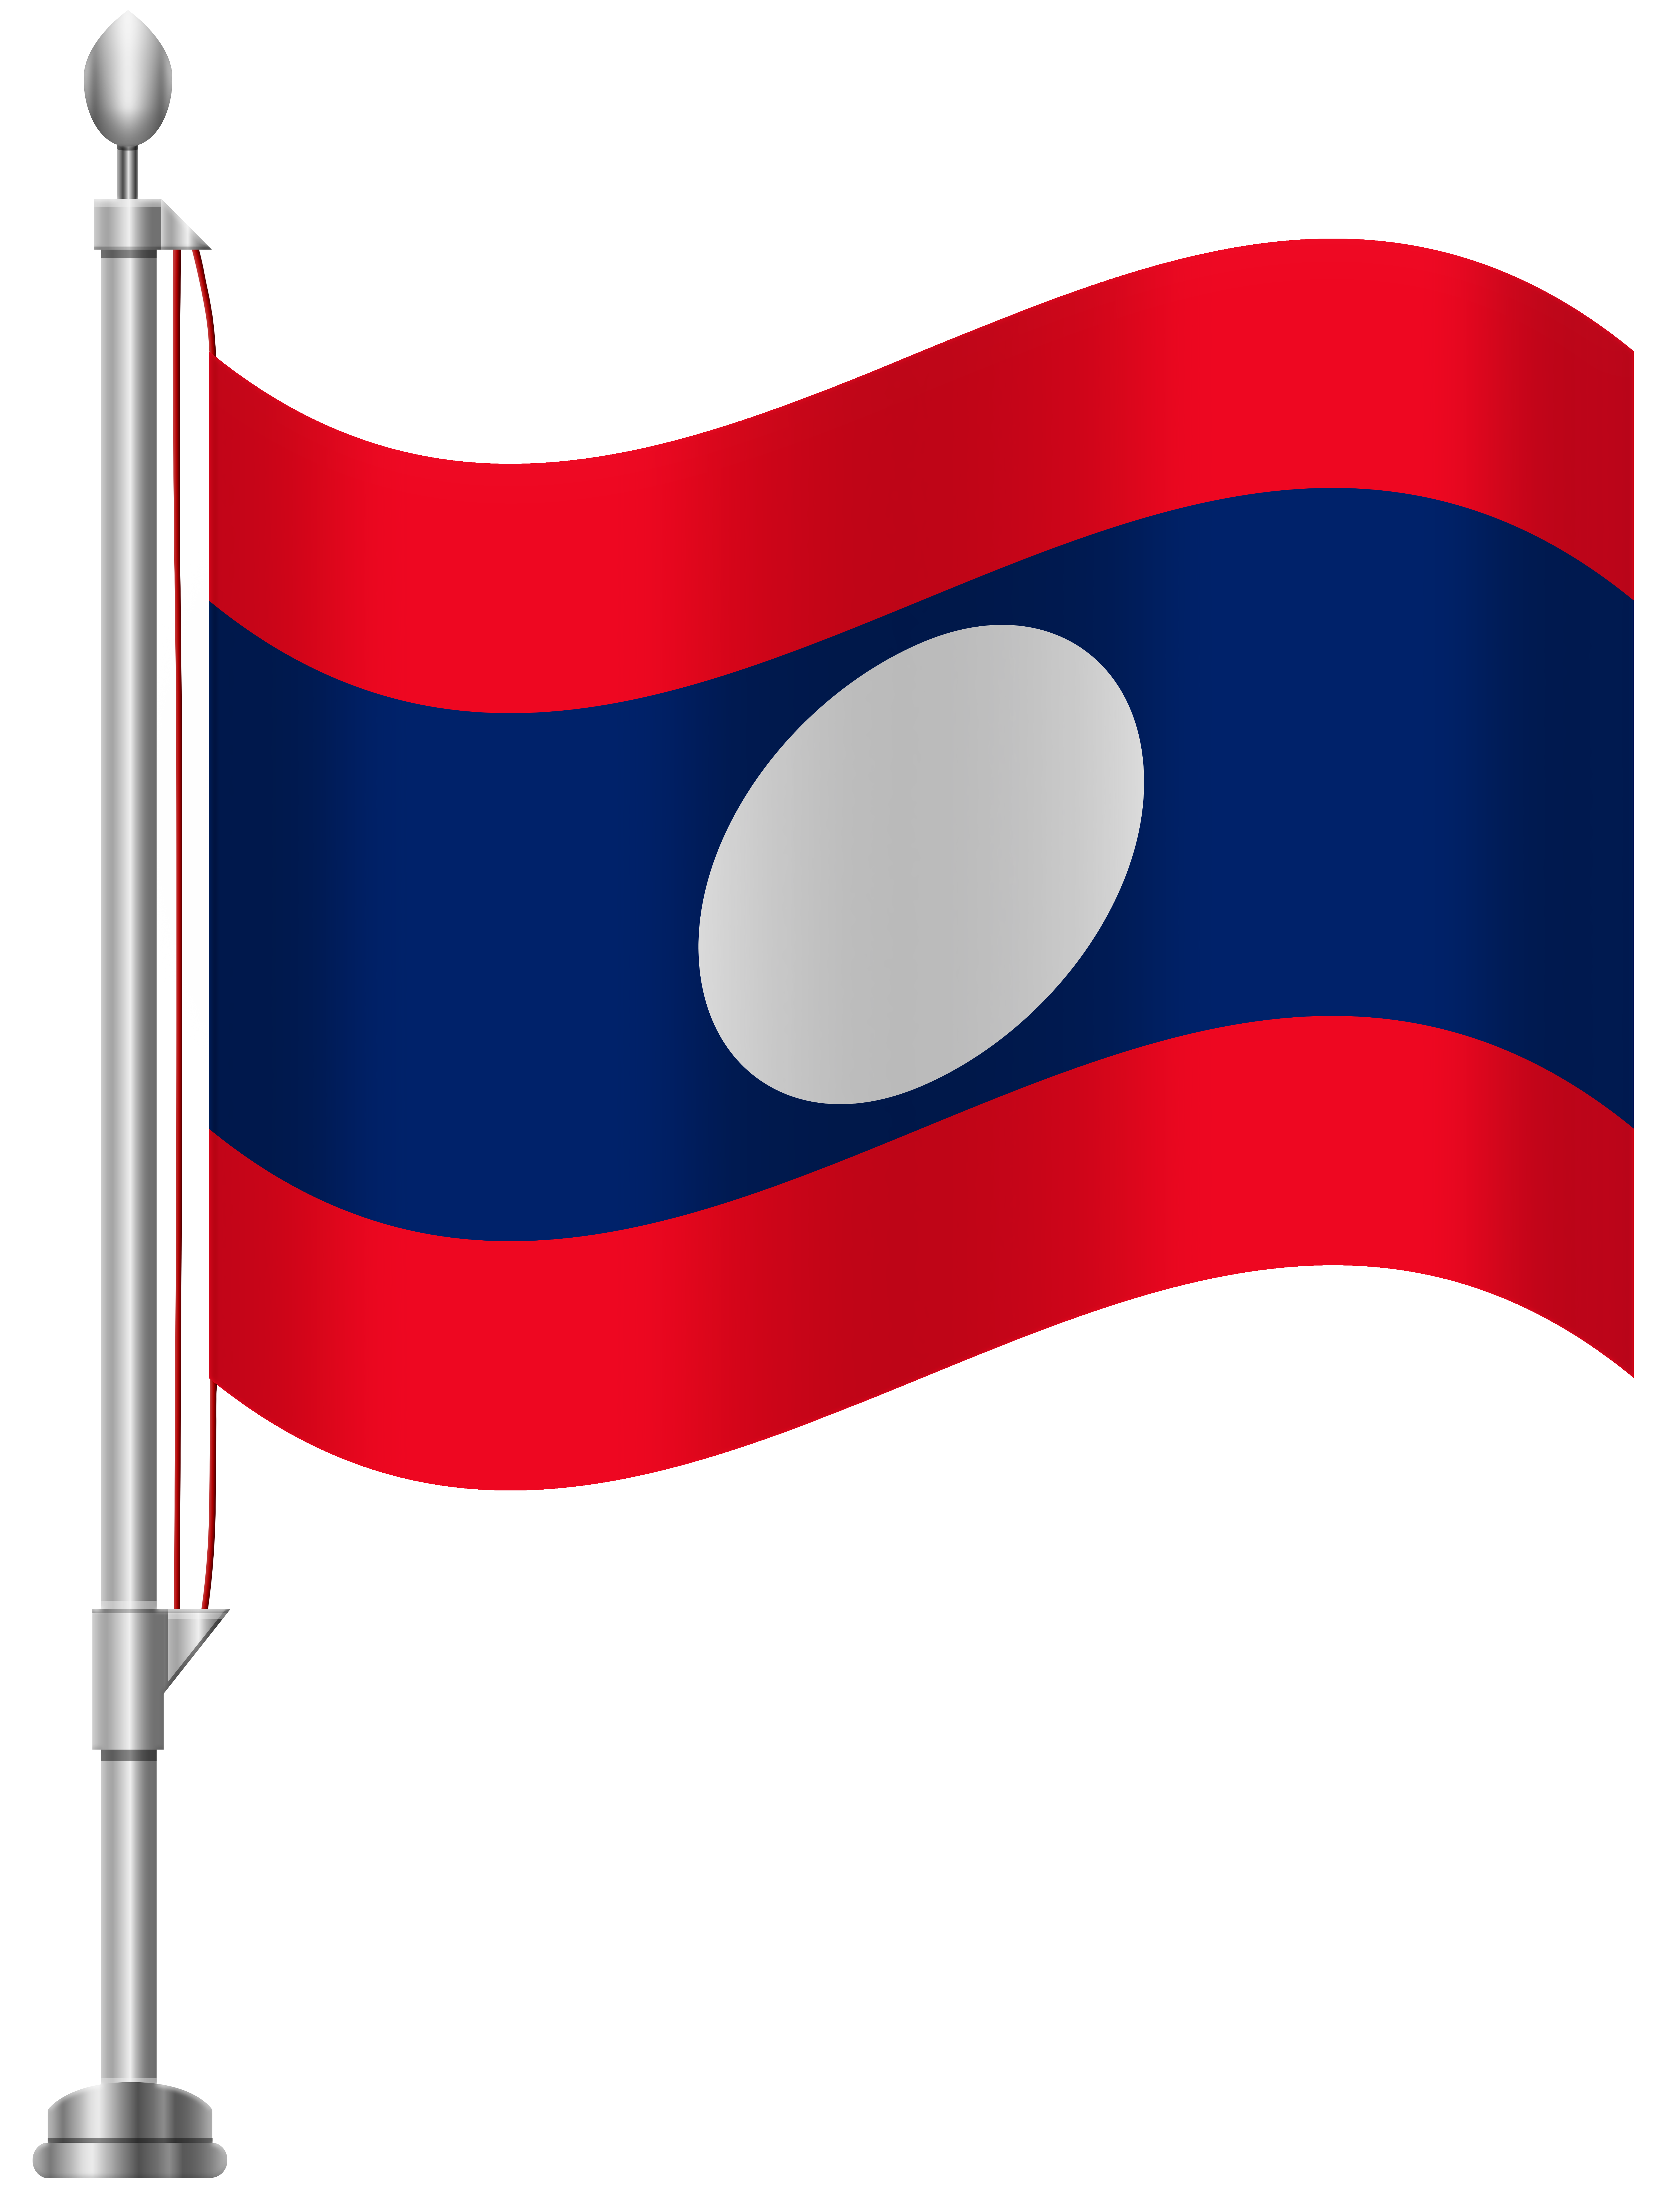 Laos flag png clip. Buddha clipart lao graphic free